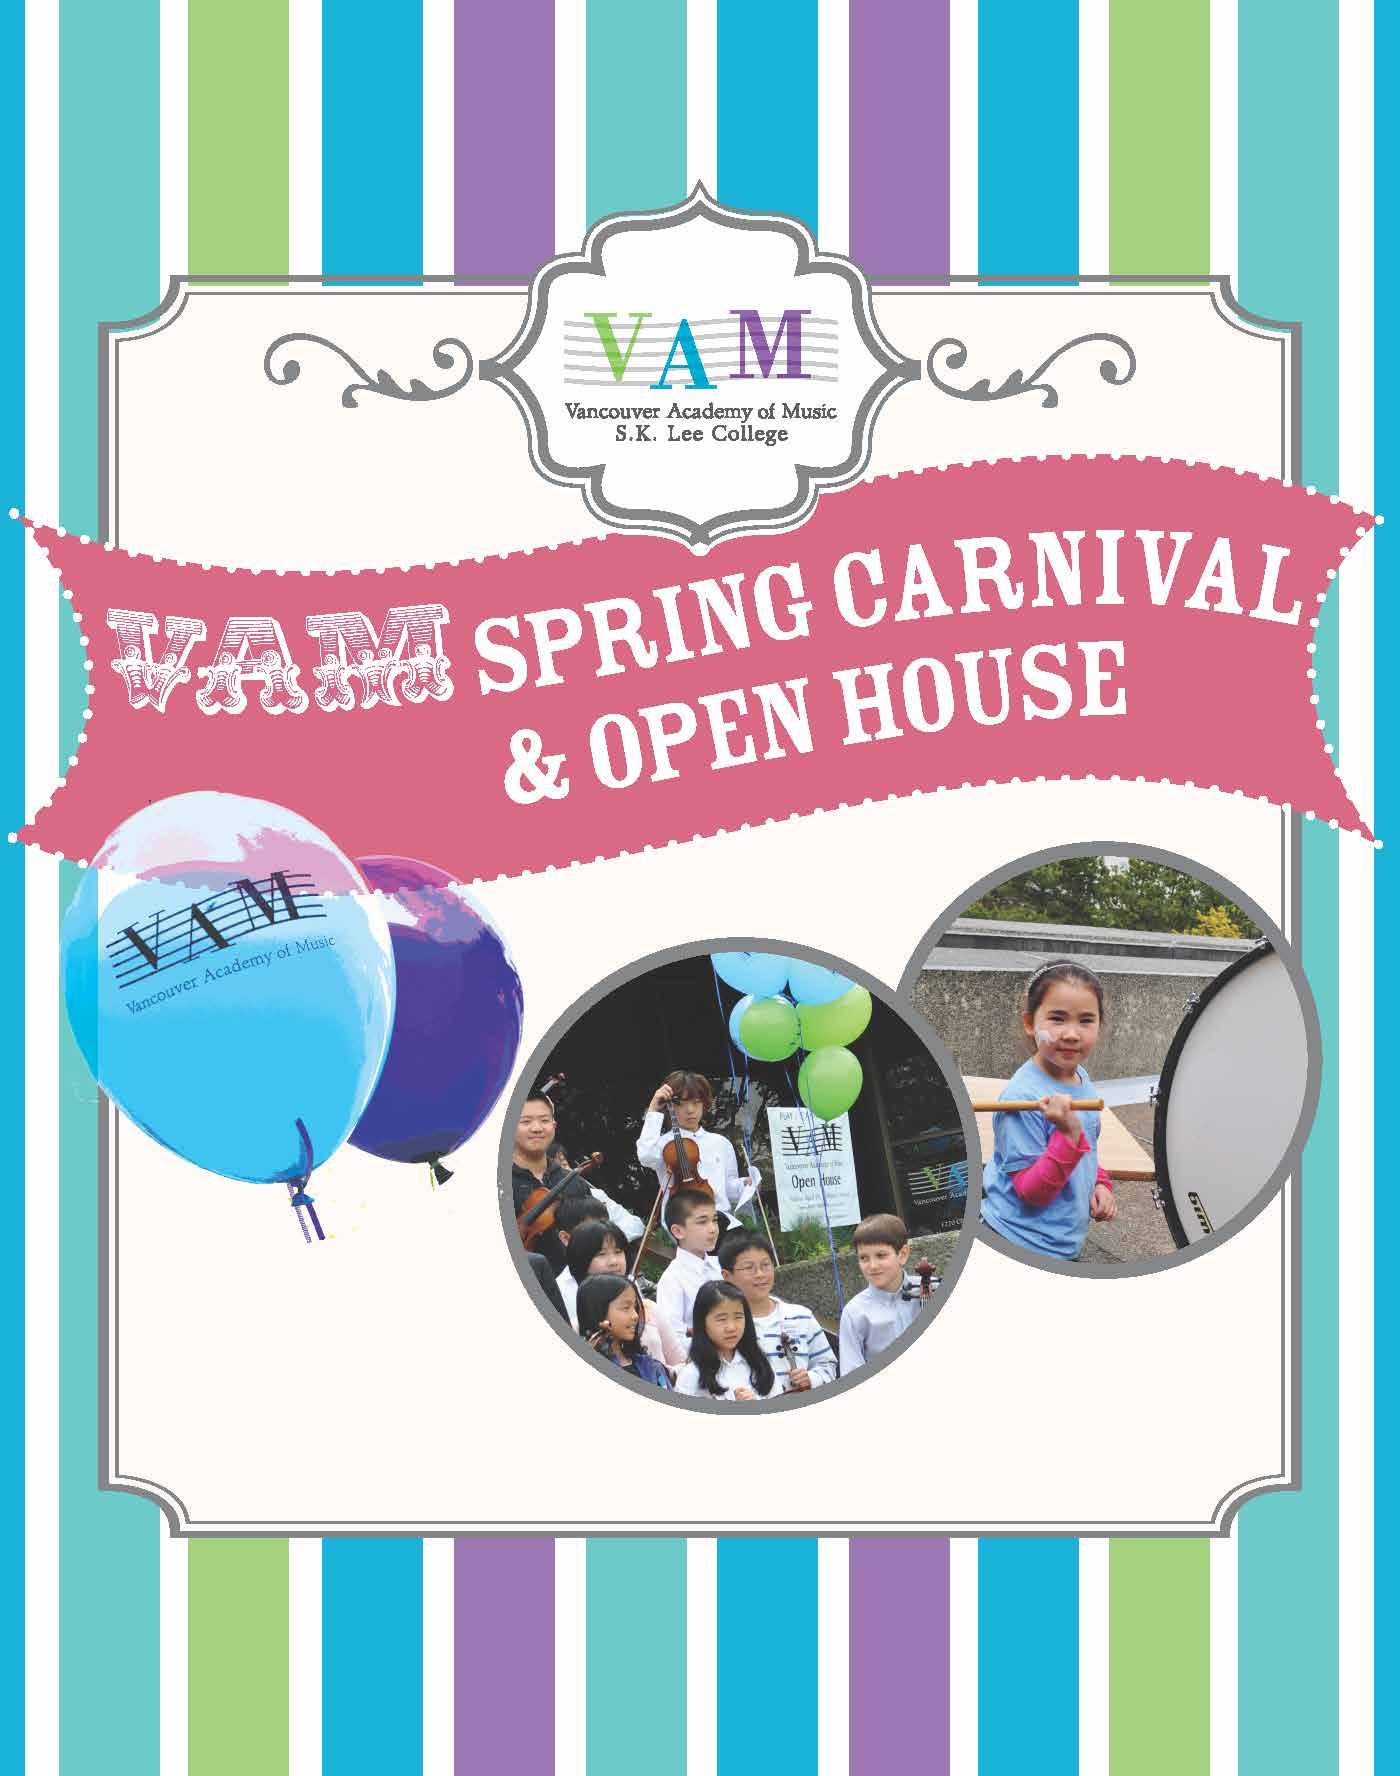 VAM Spring Carnival and Open House at the Vancouver Academy of Music